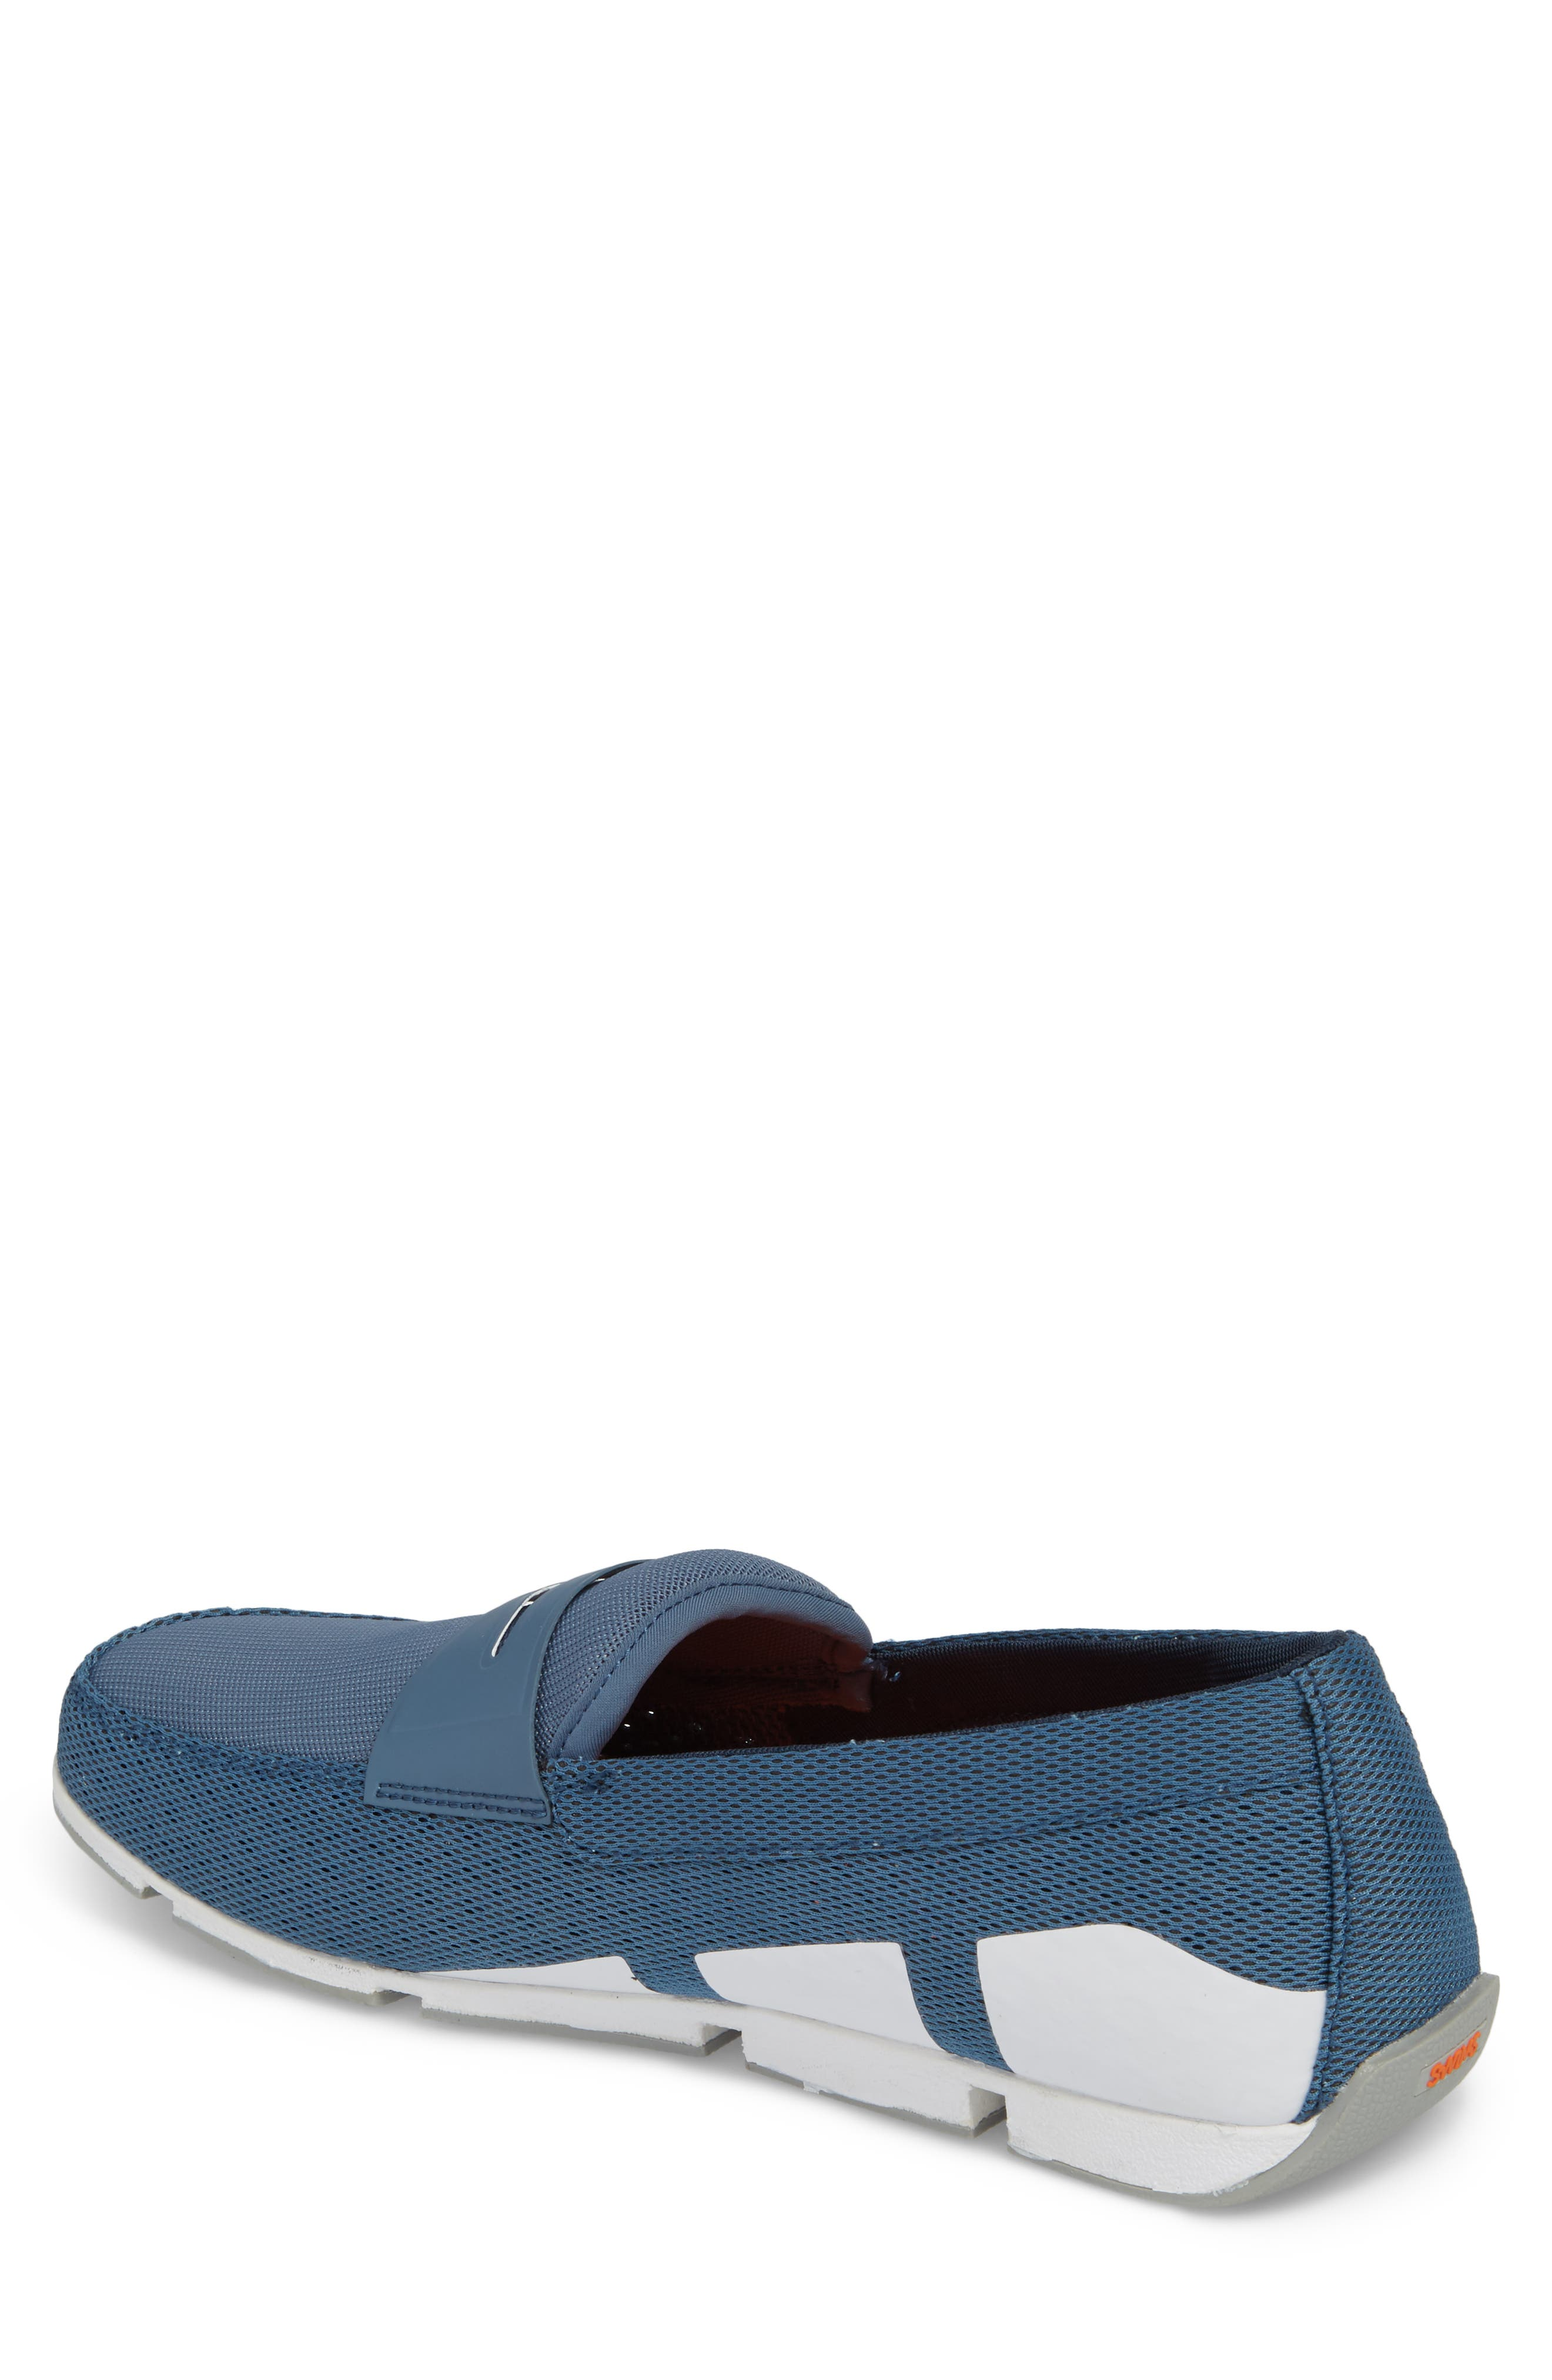 Breeze Penny Loafer,                             Alternate thumbnail 2, color,                             SLATE/ WHITE/ GREY FABRIC